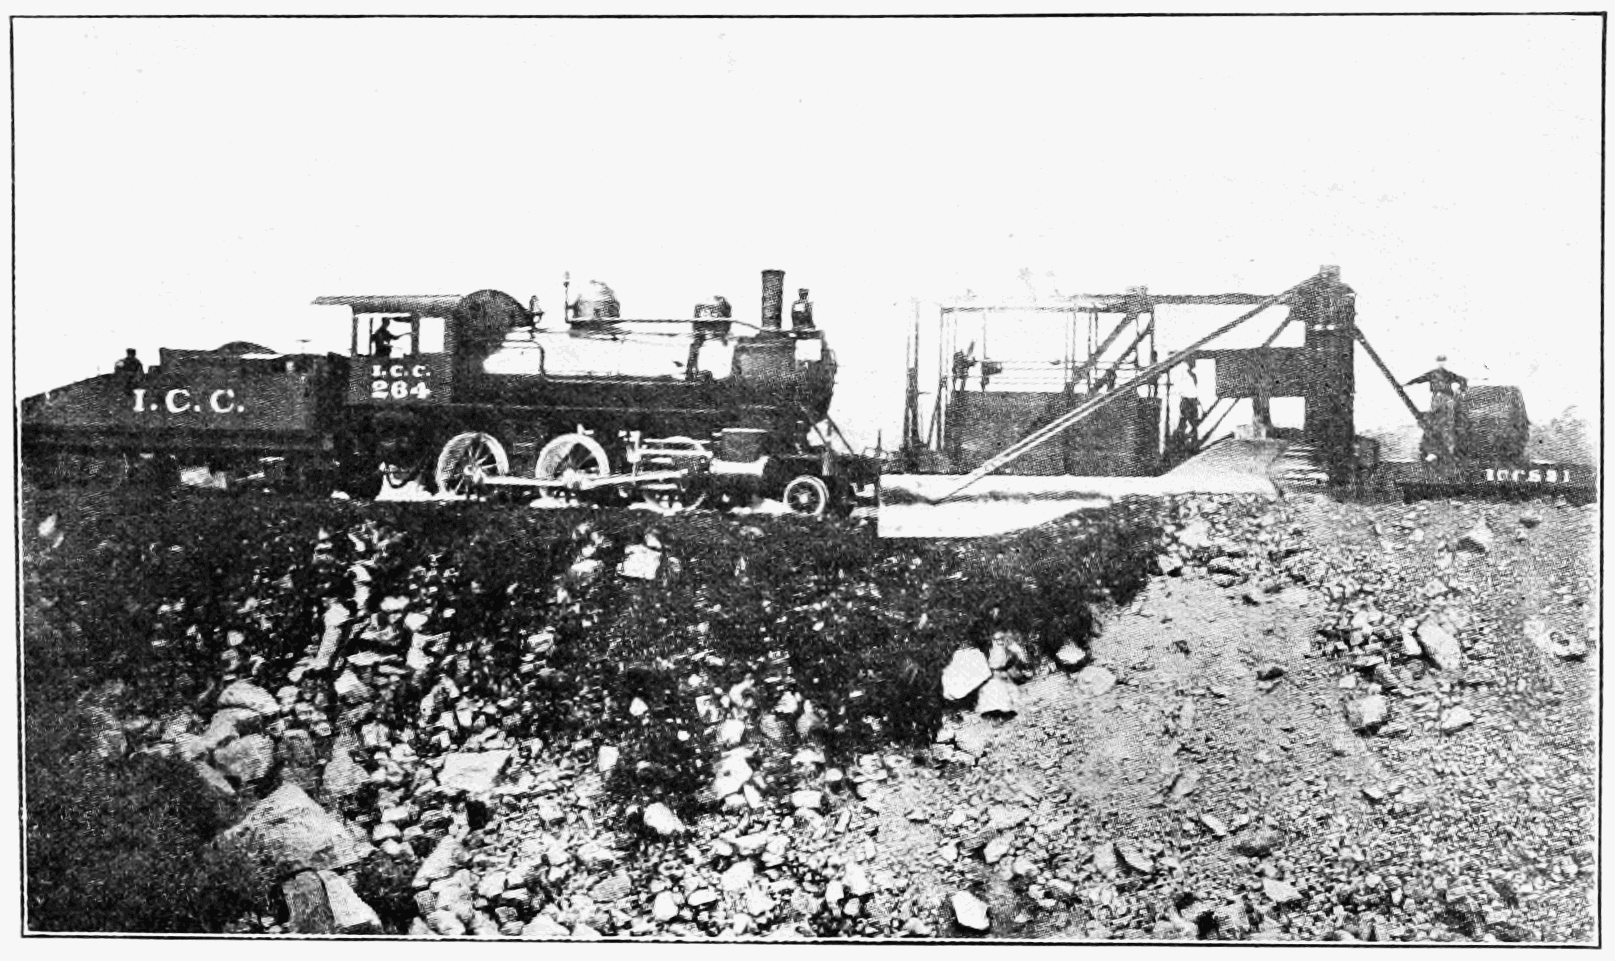 One of the rate photos of the Panama Railroad construction